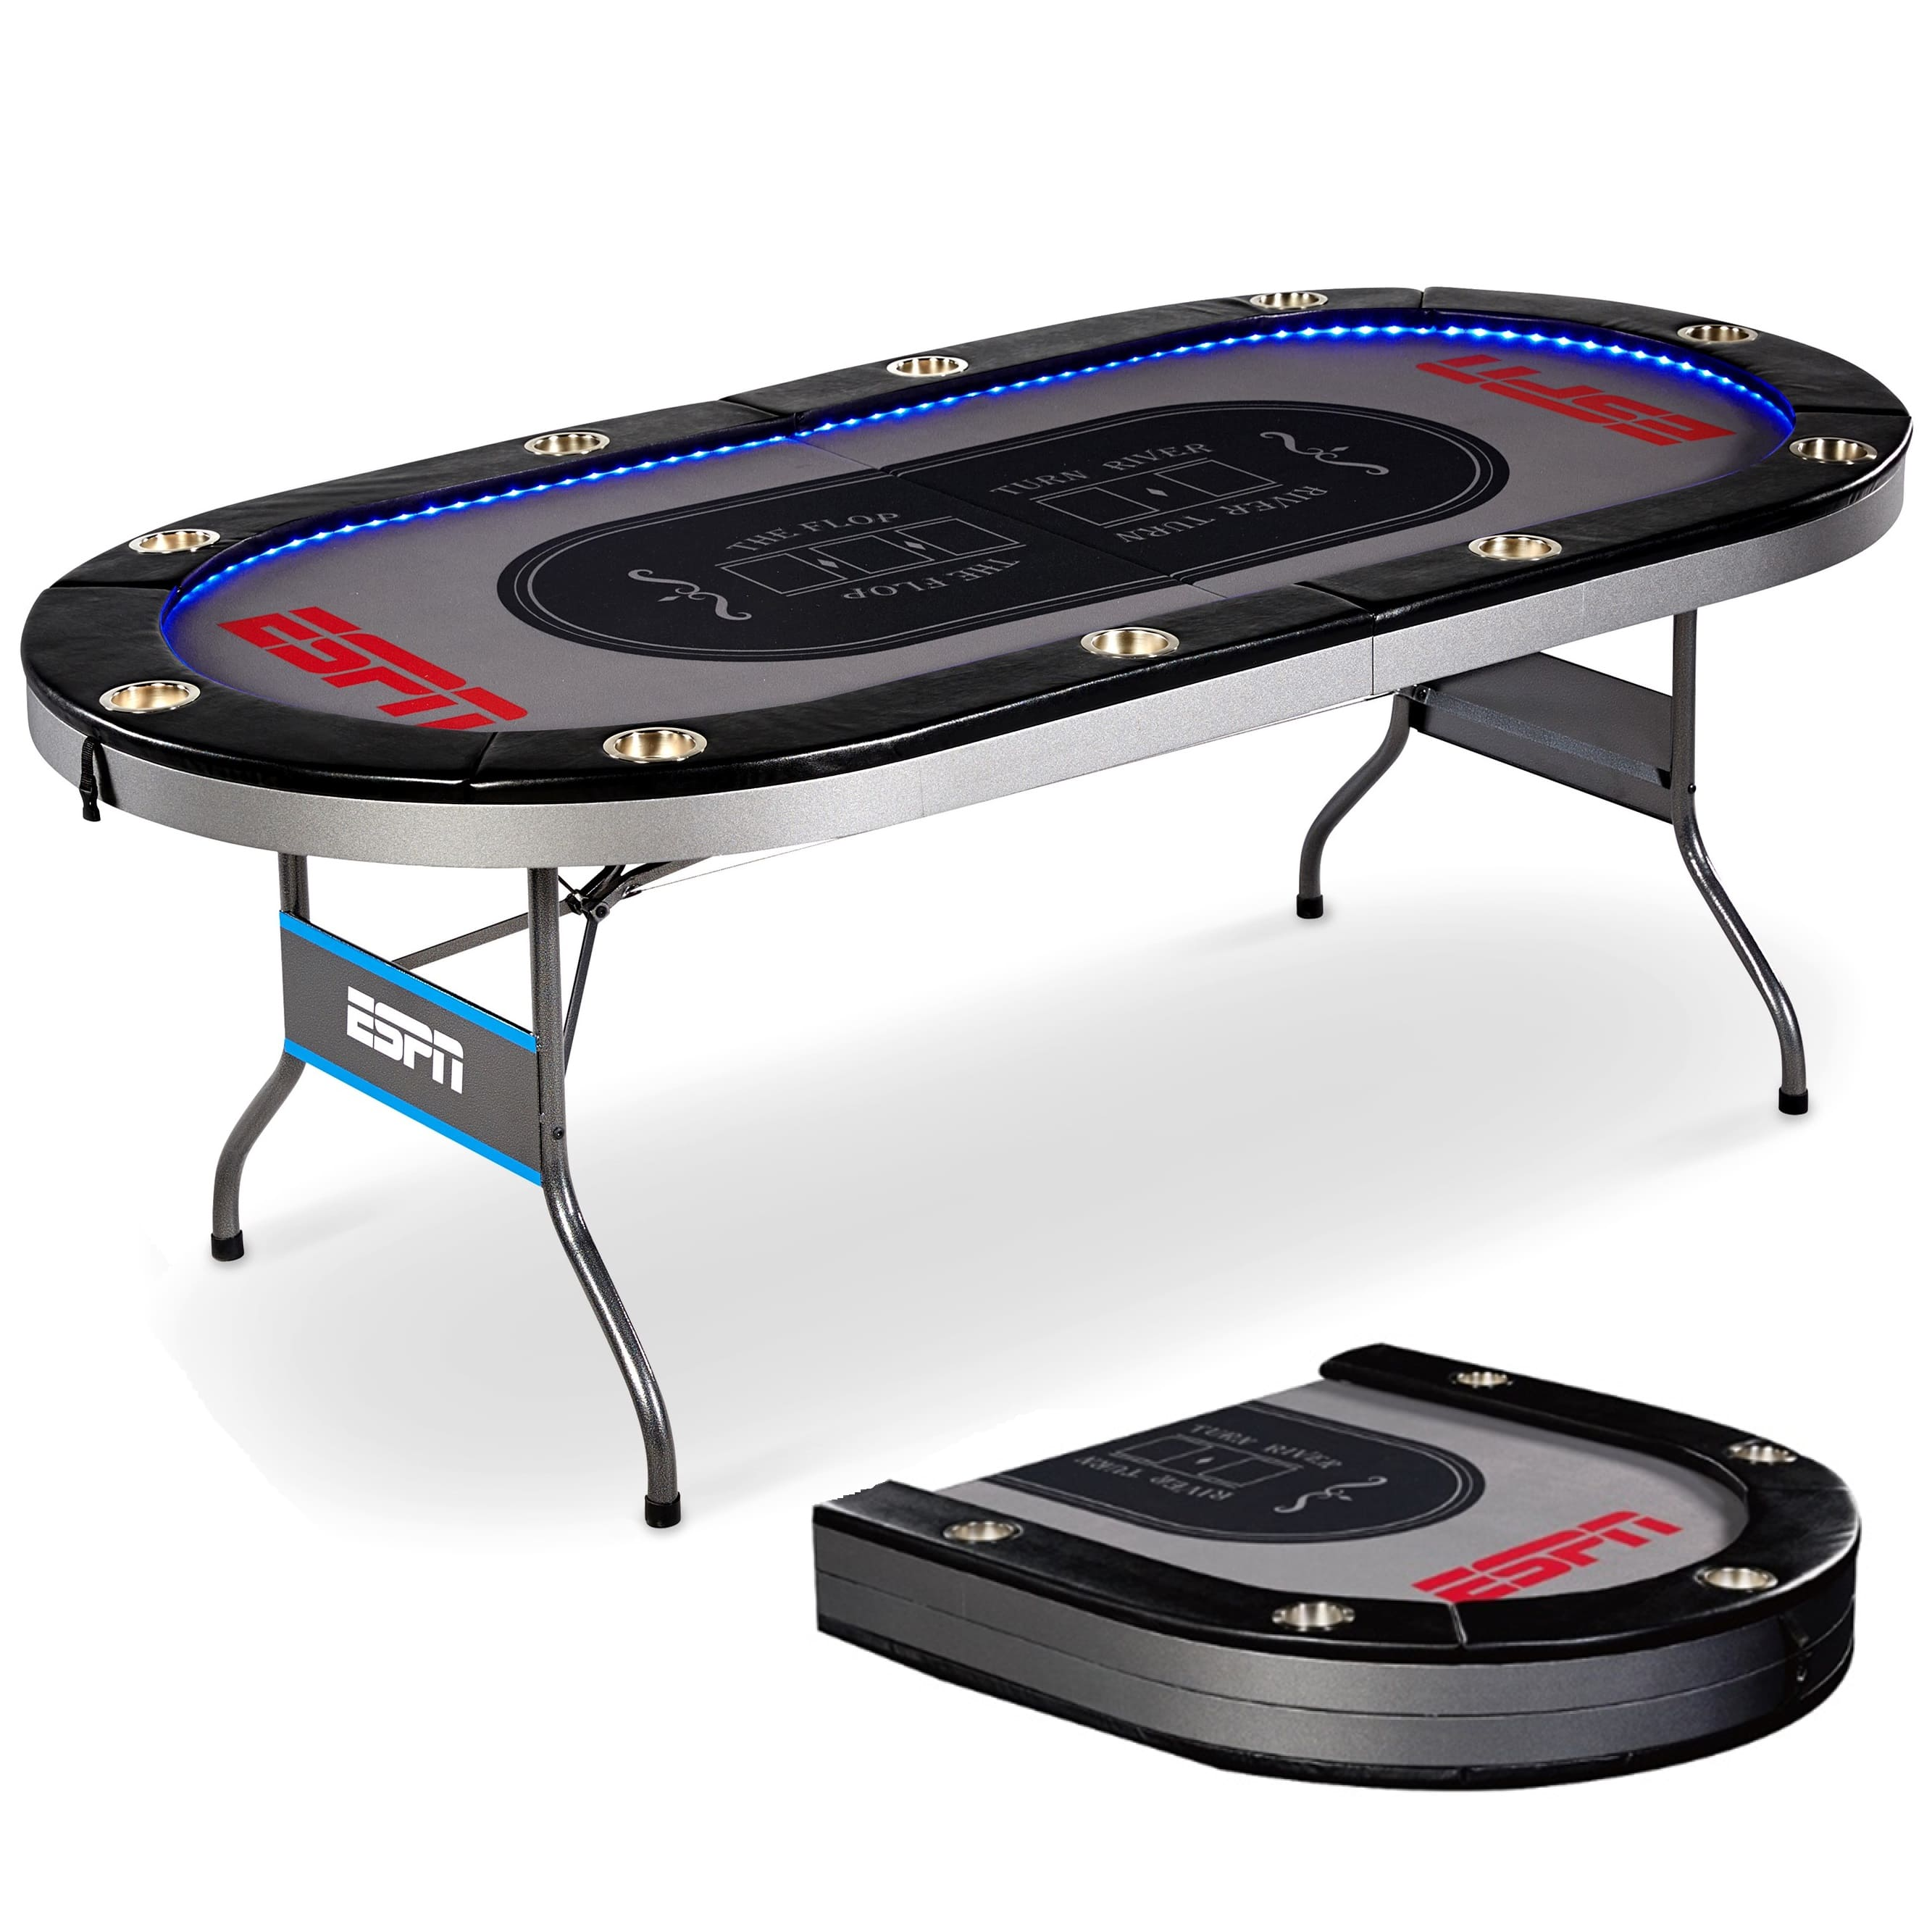 ESPN Foldable Poker Table - $159.99